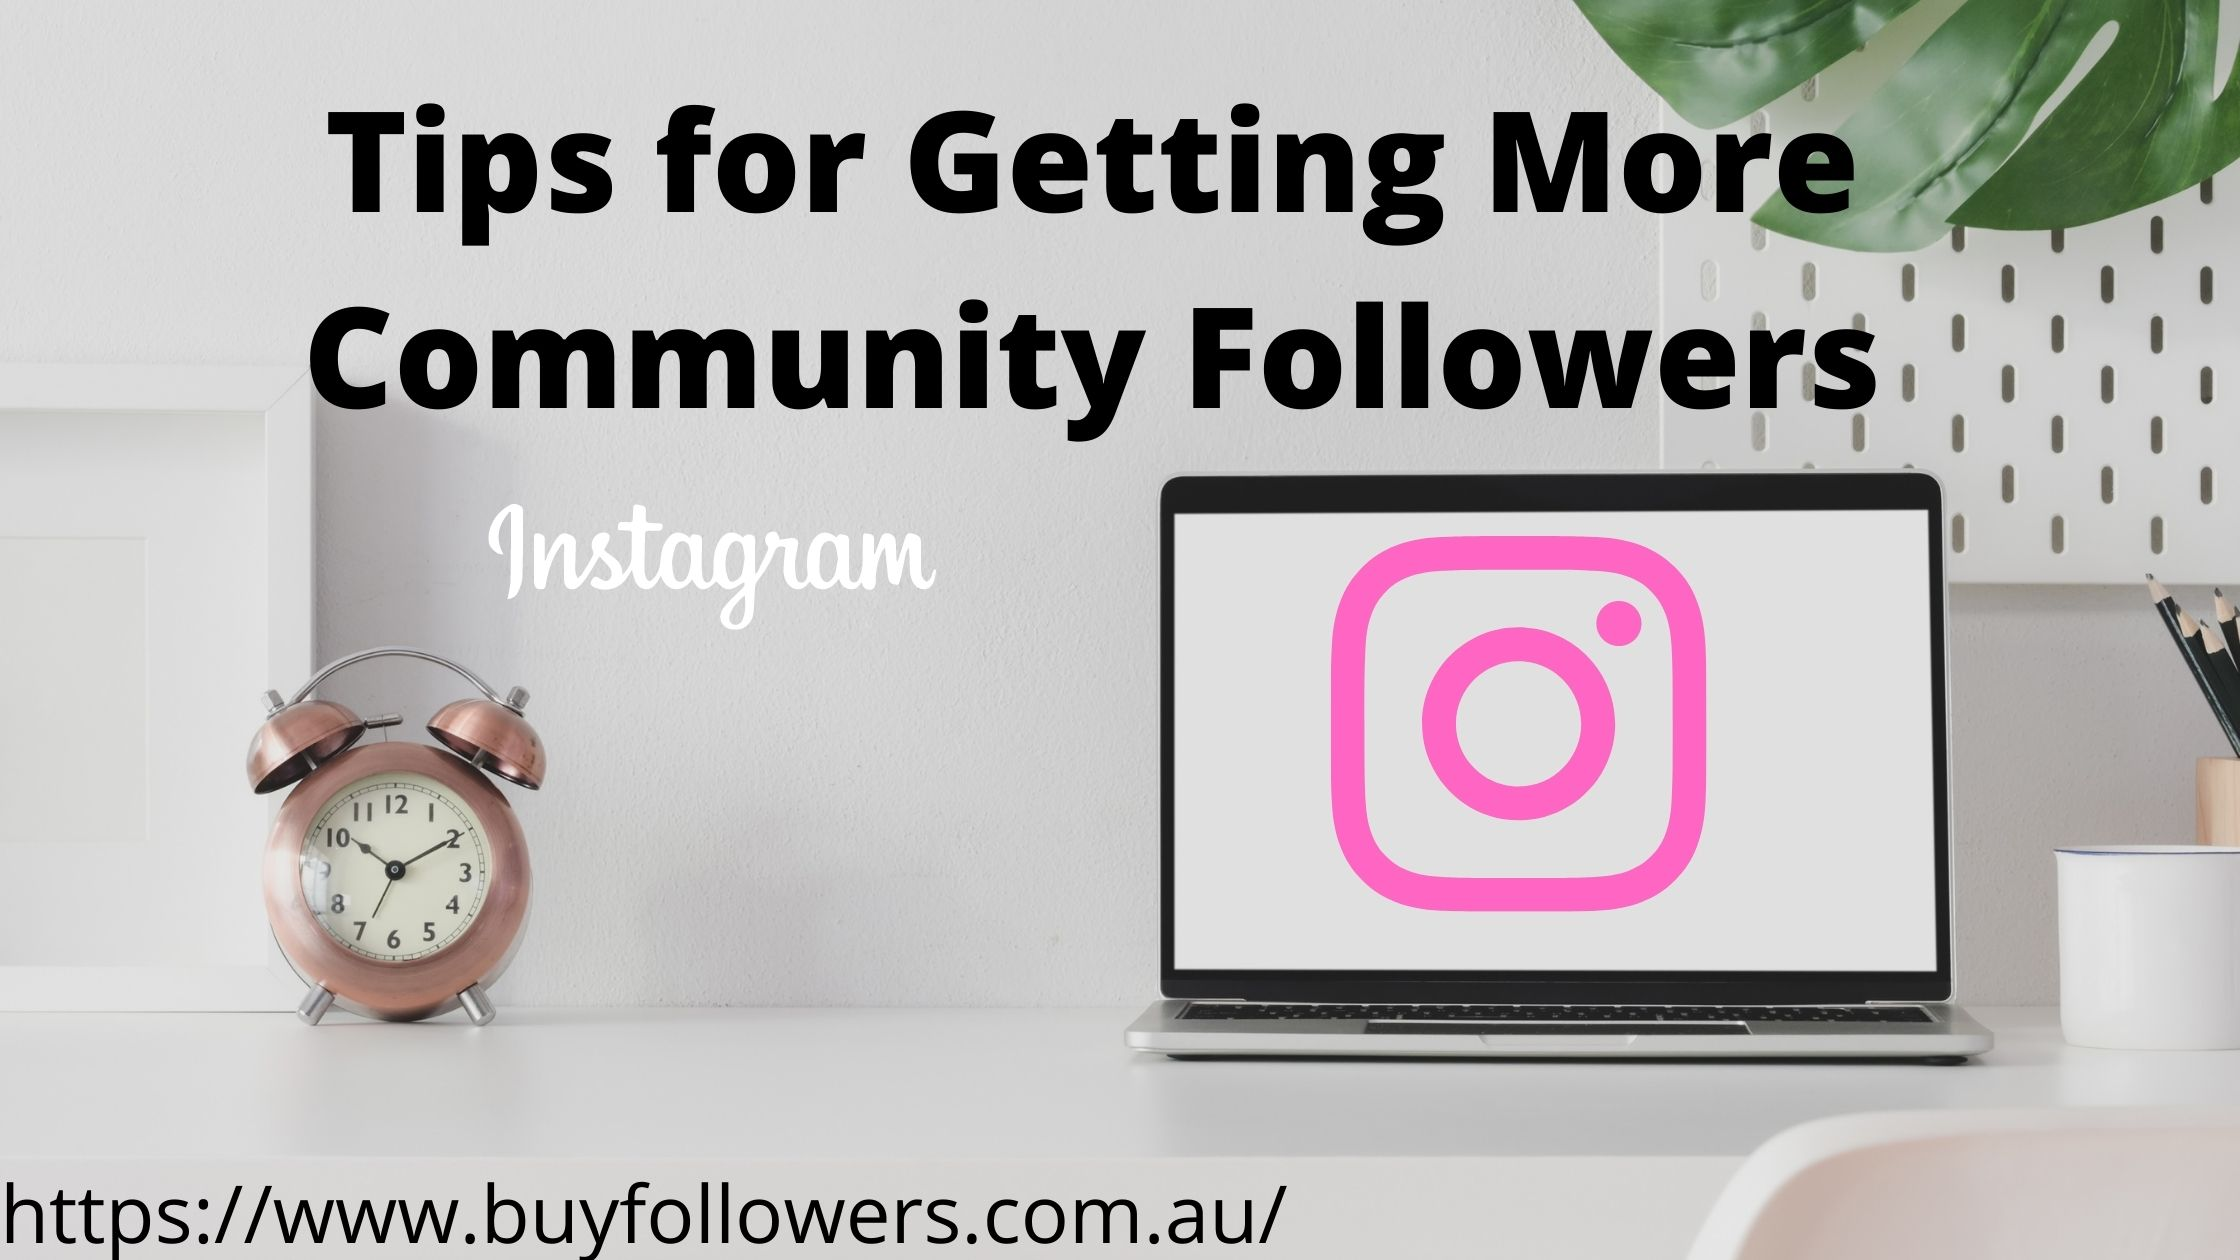 Tips for Getting More Community Followers